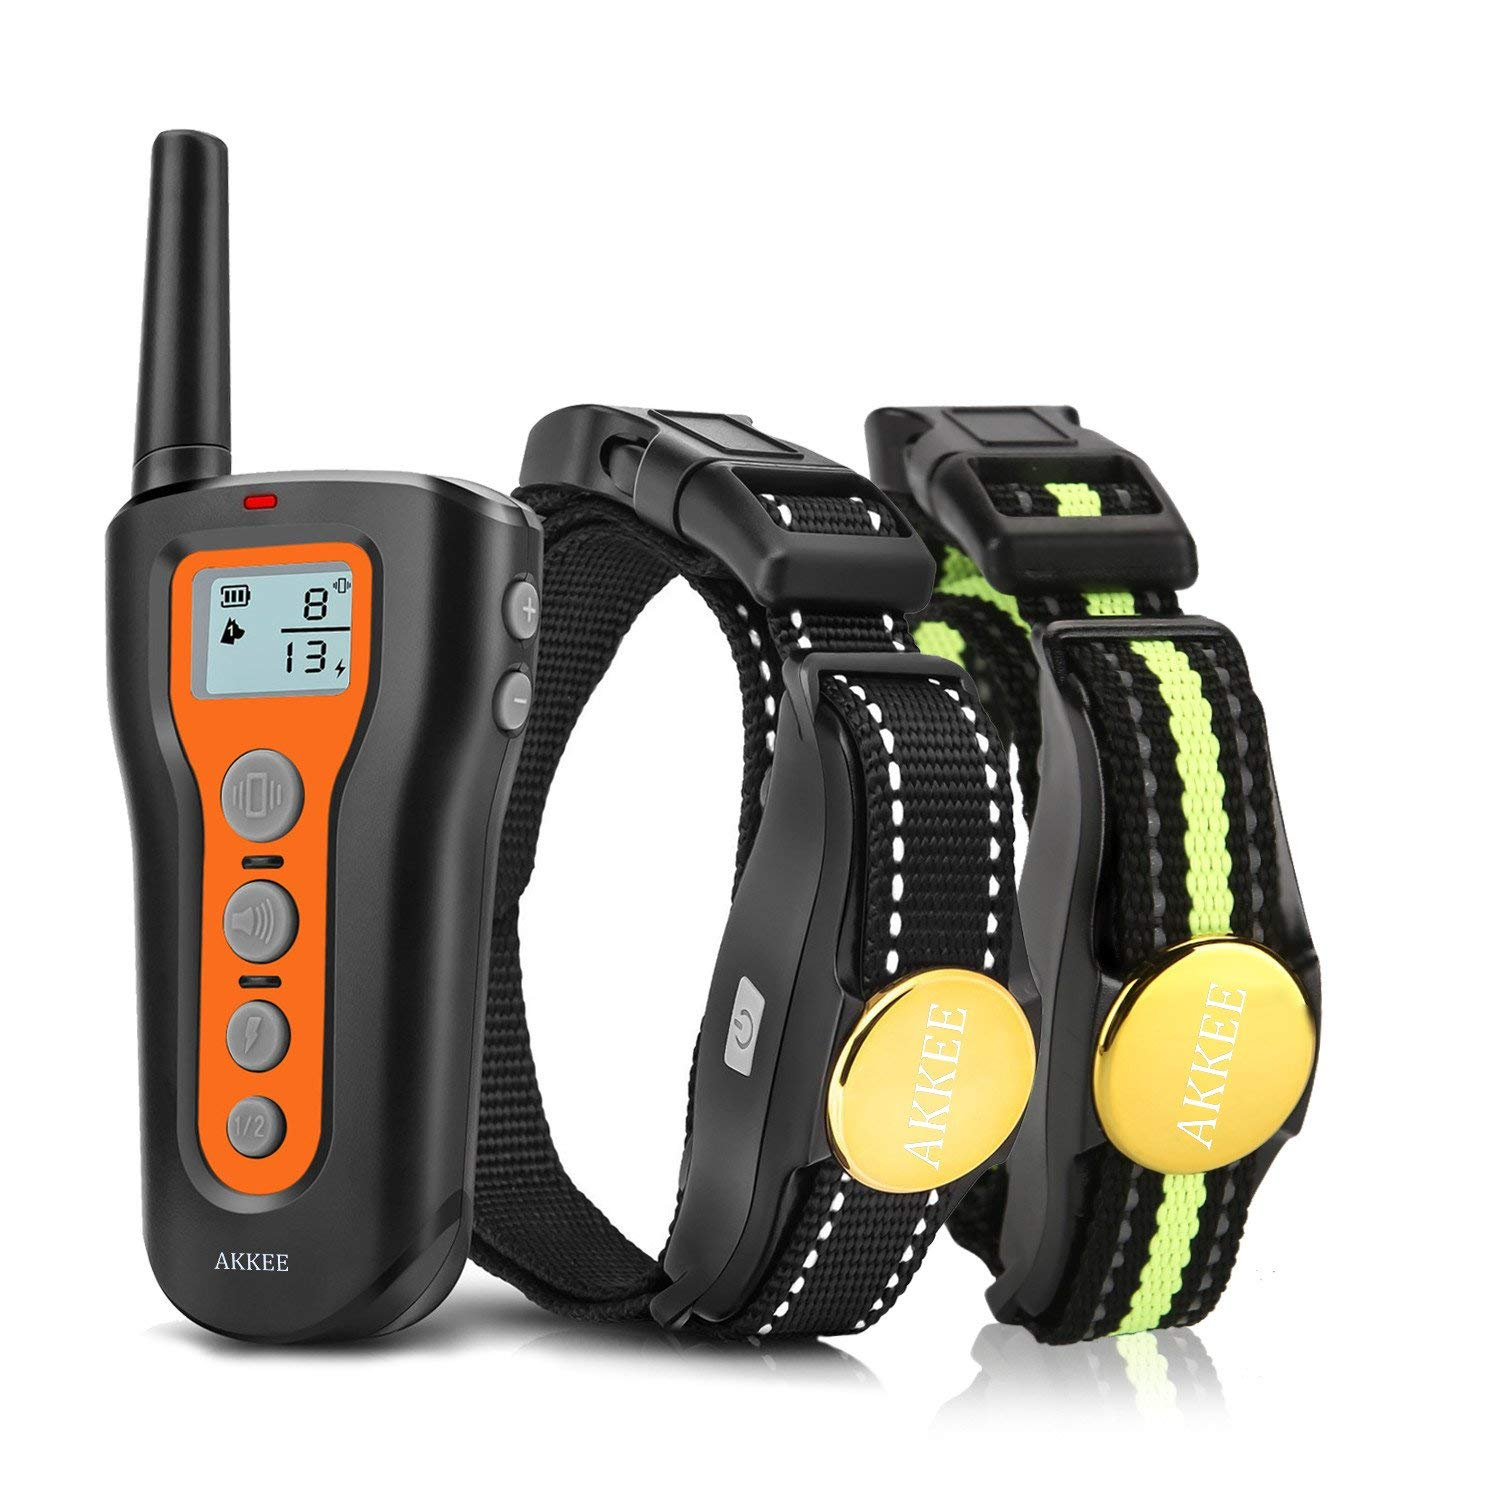 AKKEE Dog Training Collar for 2 Dogs - Rechargeable Dog Shock Collar,3 Training Modes Beep, Vibration and Shock, Waterproof Training Collar, Up to 1000Ft Remote Range, Pet Trainer Electric E-Collar by AKKEE